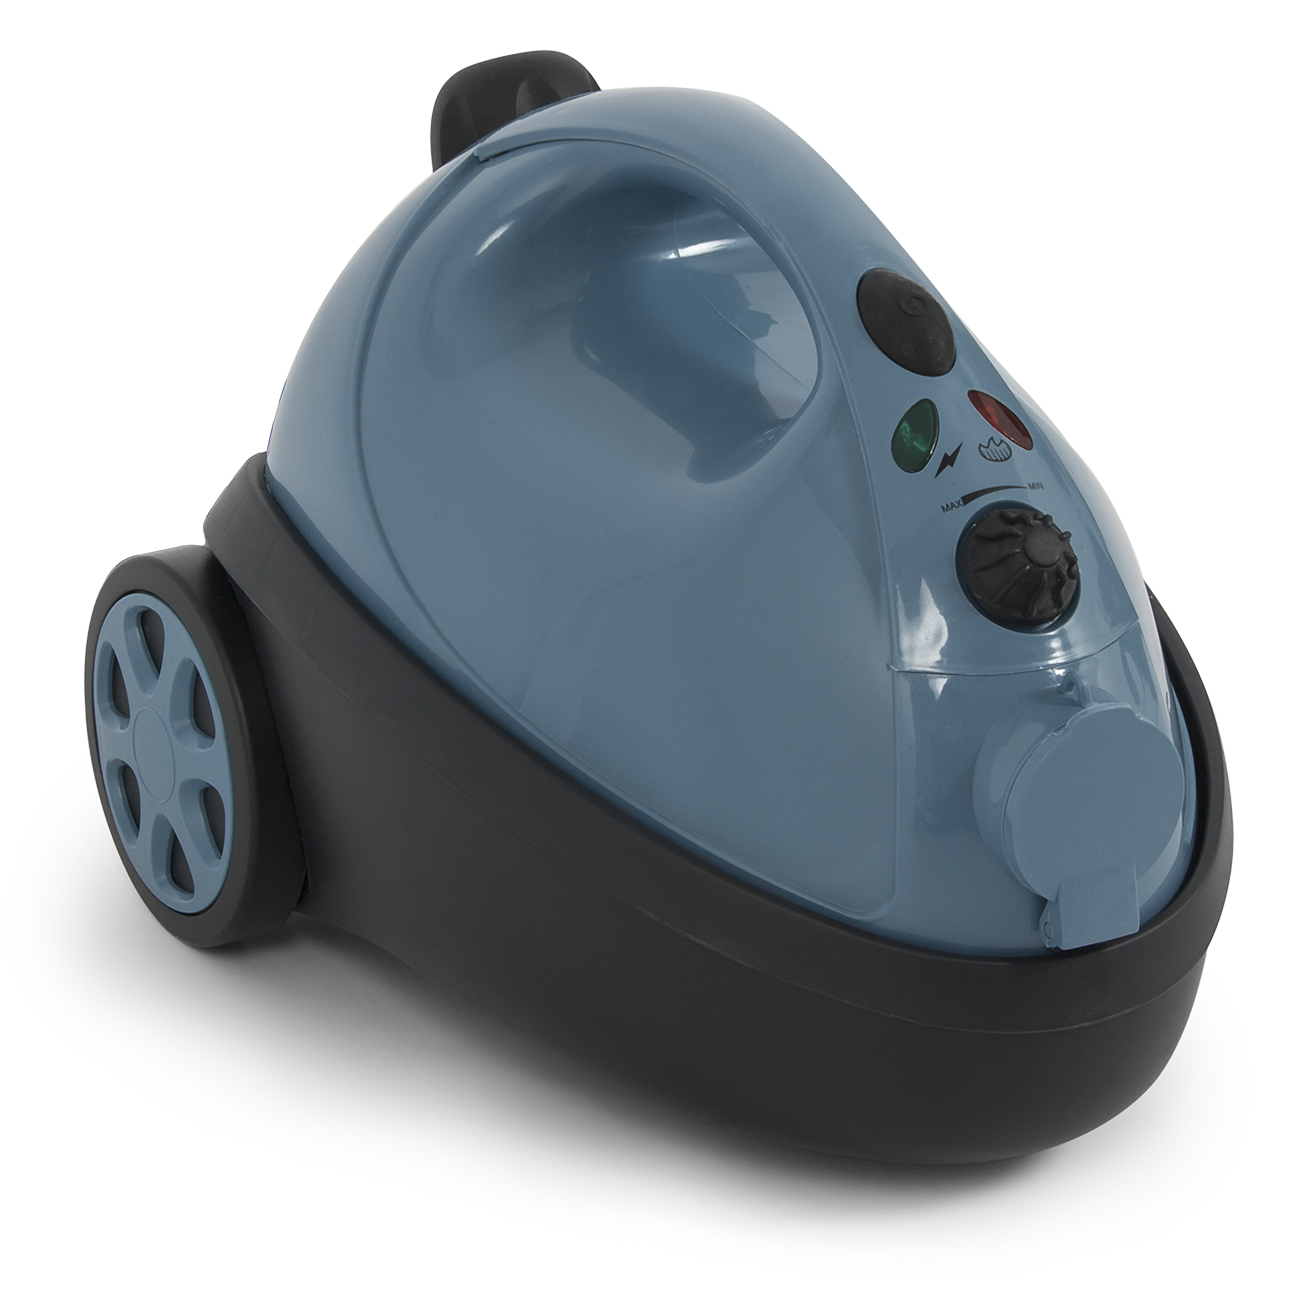 Professional Heavy Duty Steam Cleaner Portable Steamer